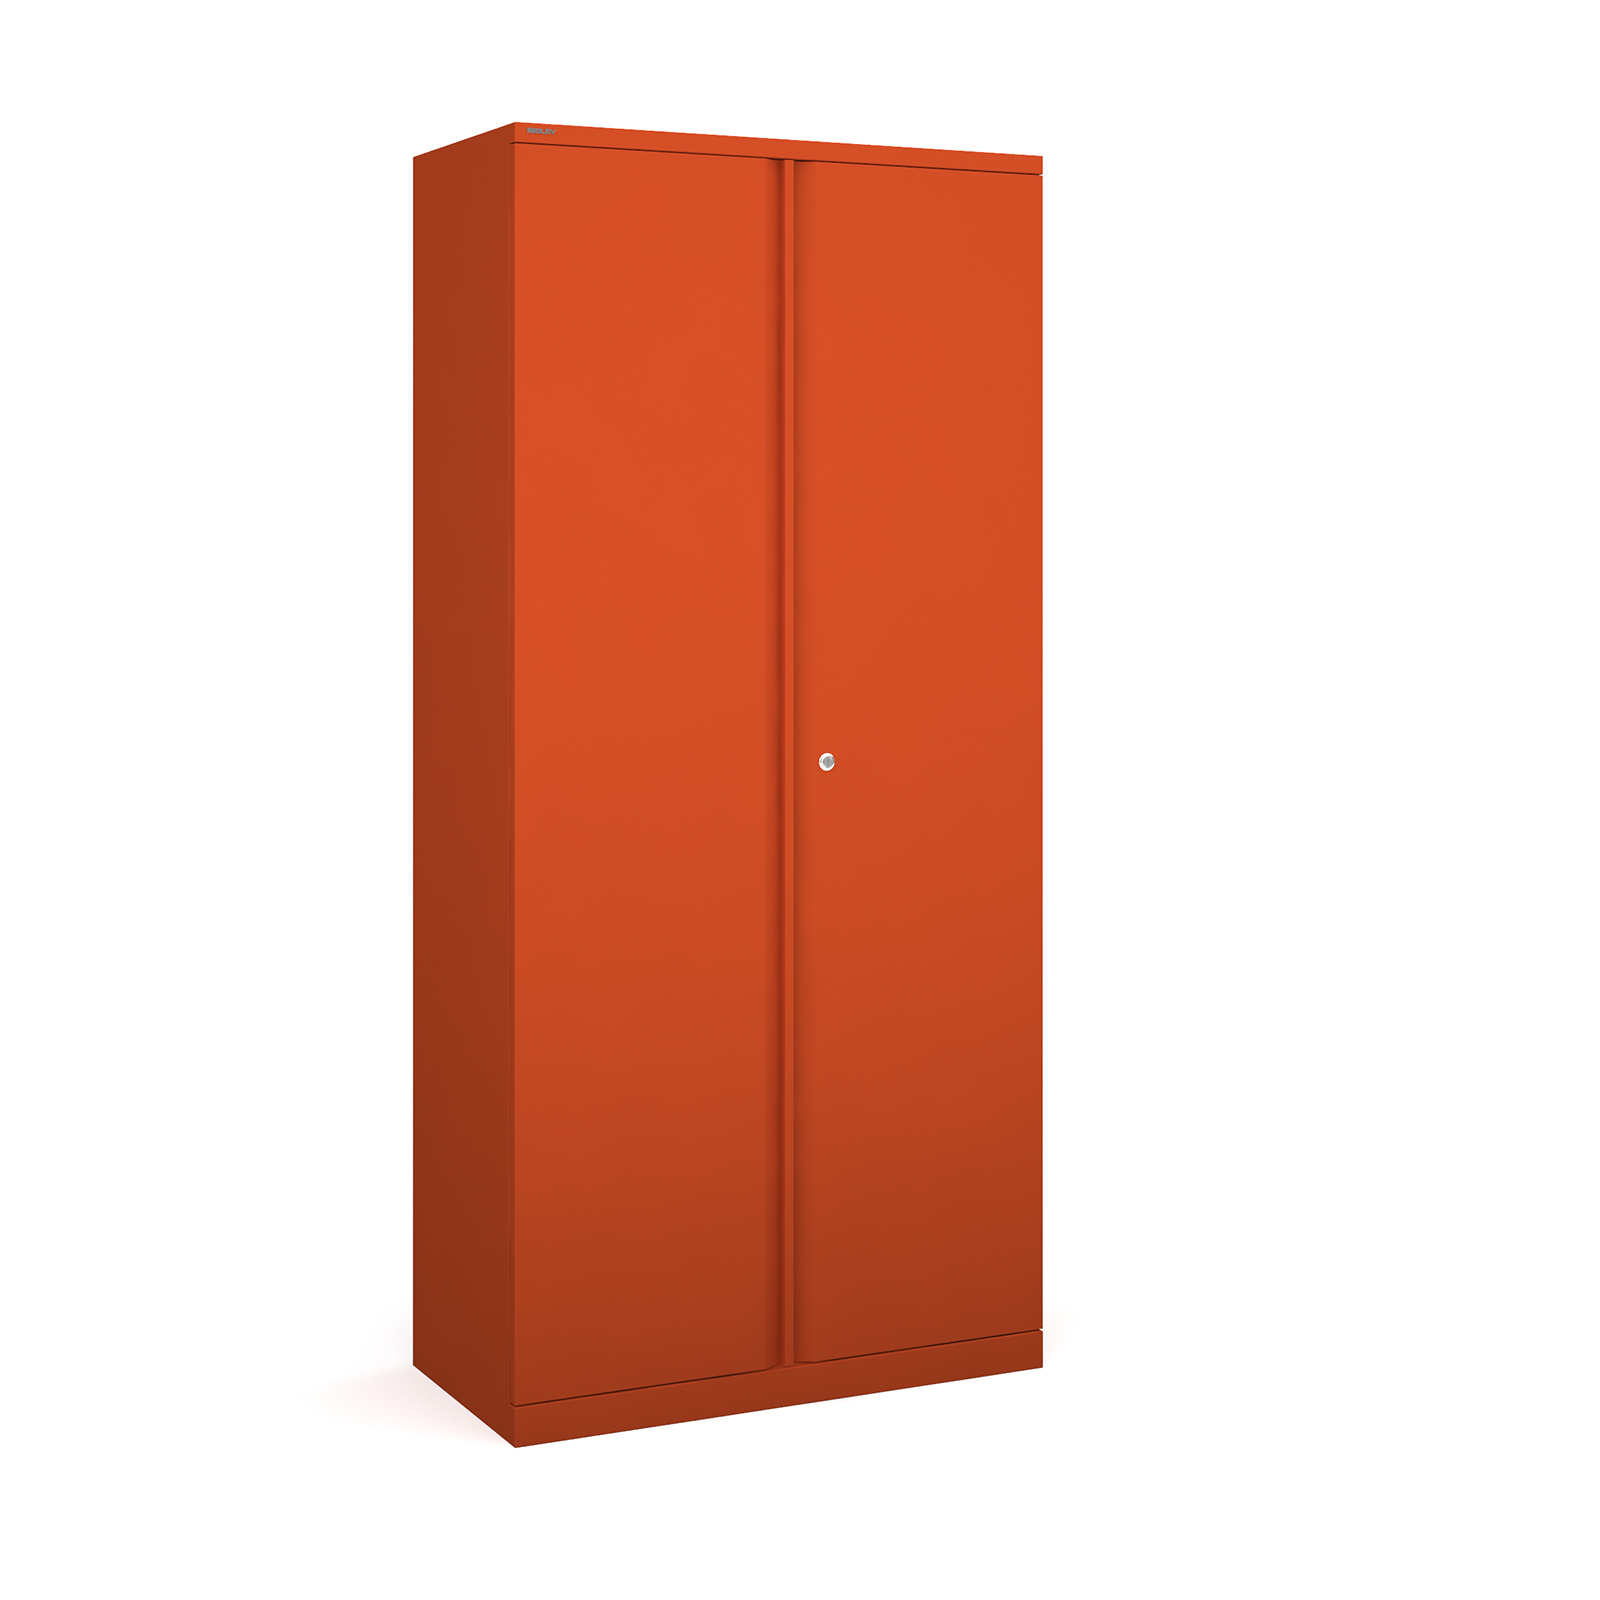 Bisley systems storage high cupboard 1970mm high - orange